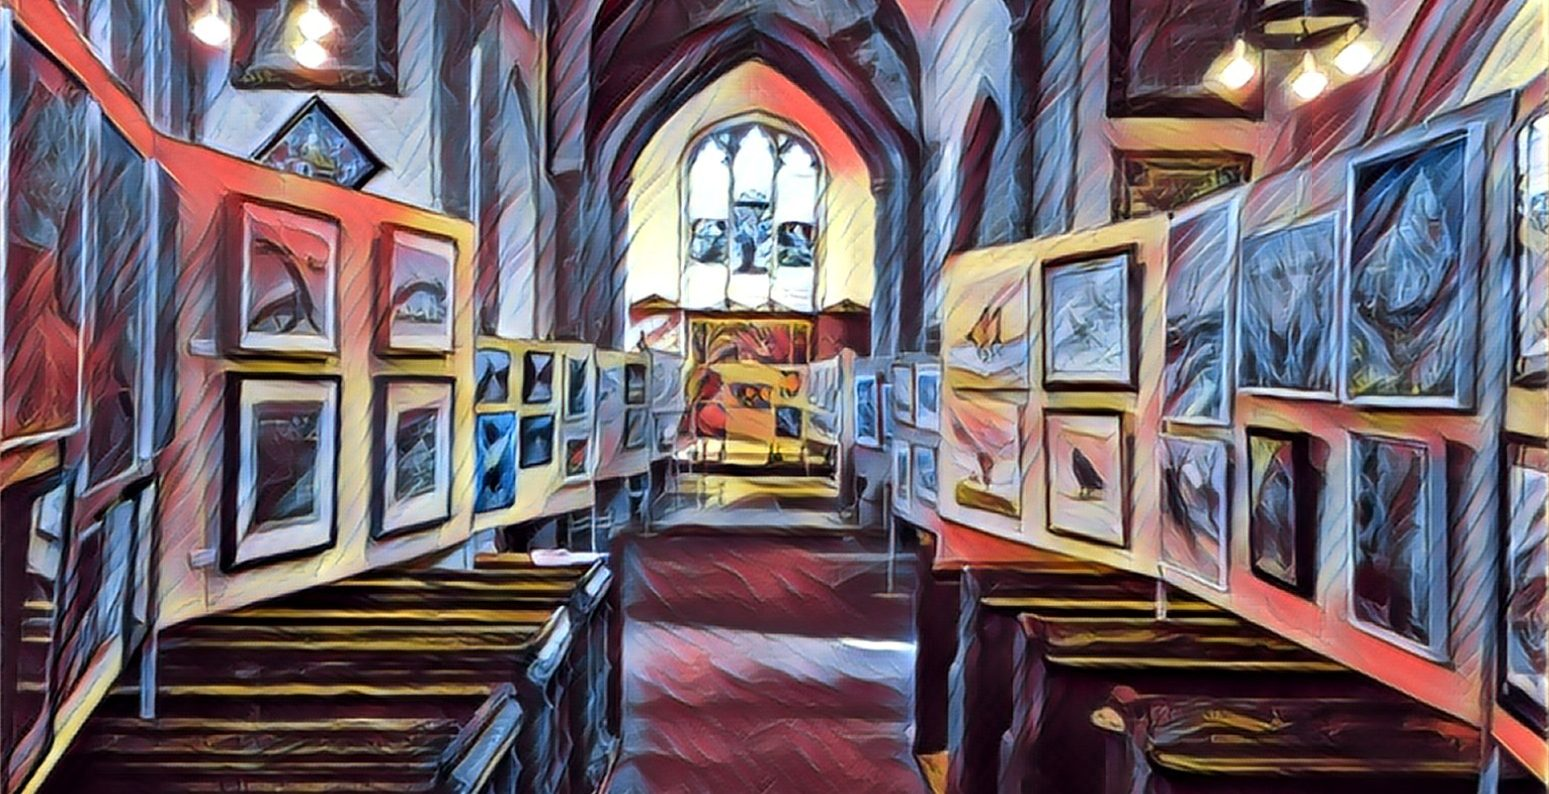 Whittlesford Art Exhibition